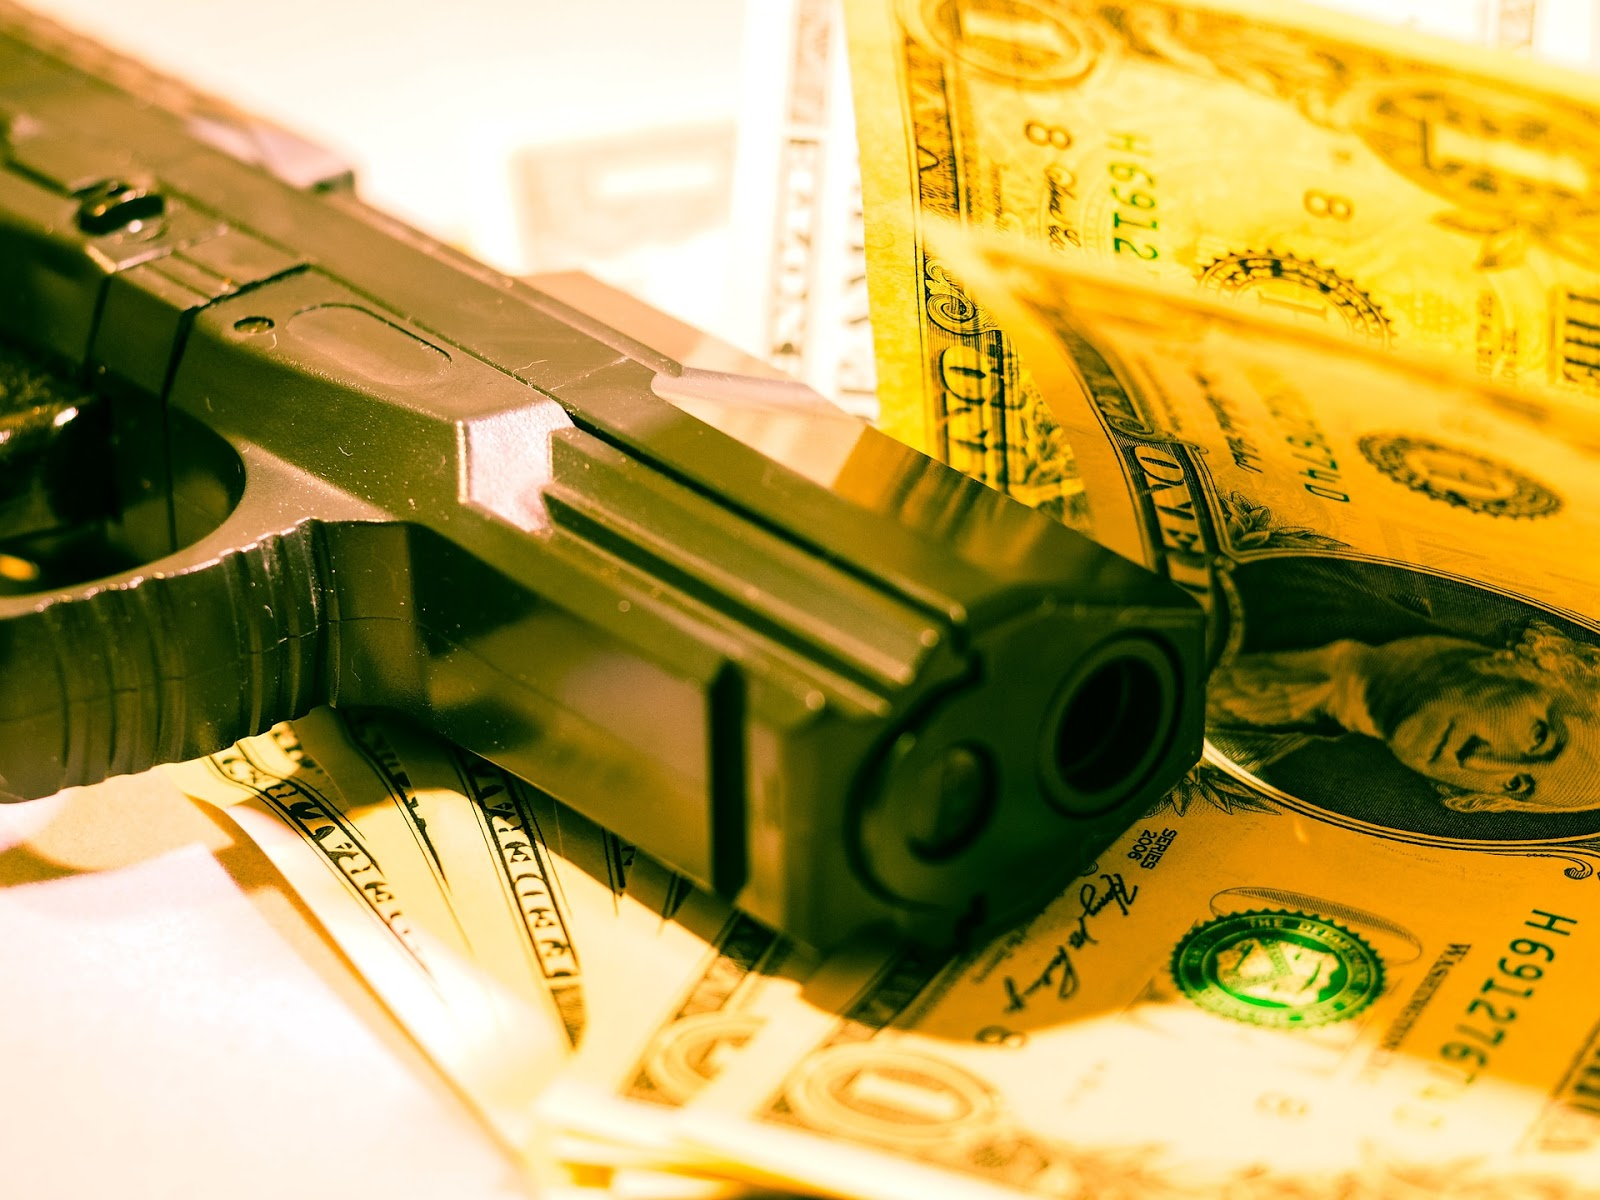 close up of several 1 dollar bills and the barrel of a pistol to illustrate blog post about movie den of thieves